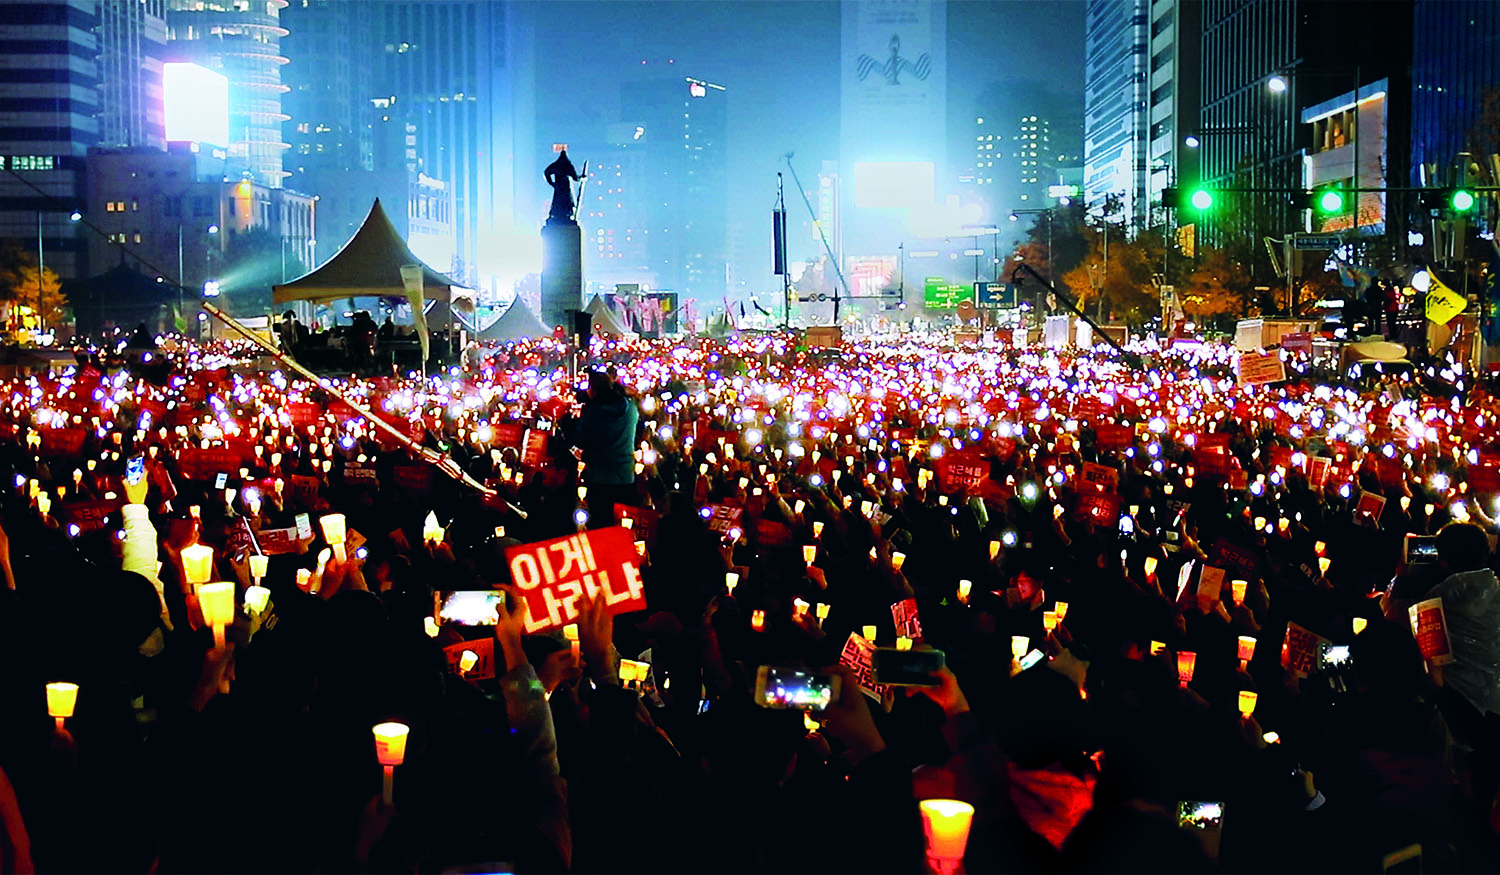 Candlelight Revolution